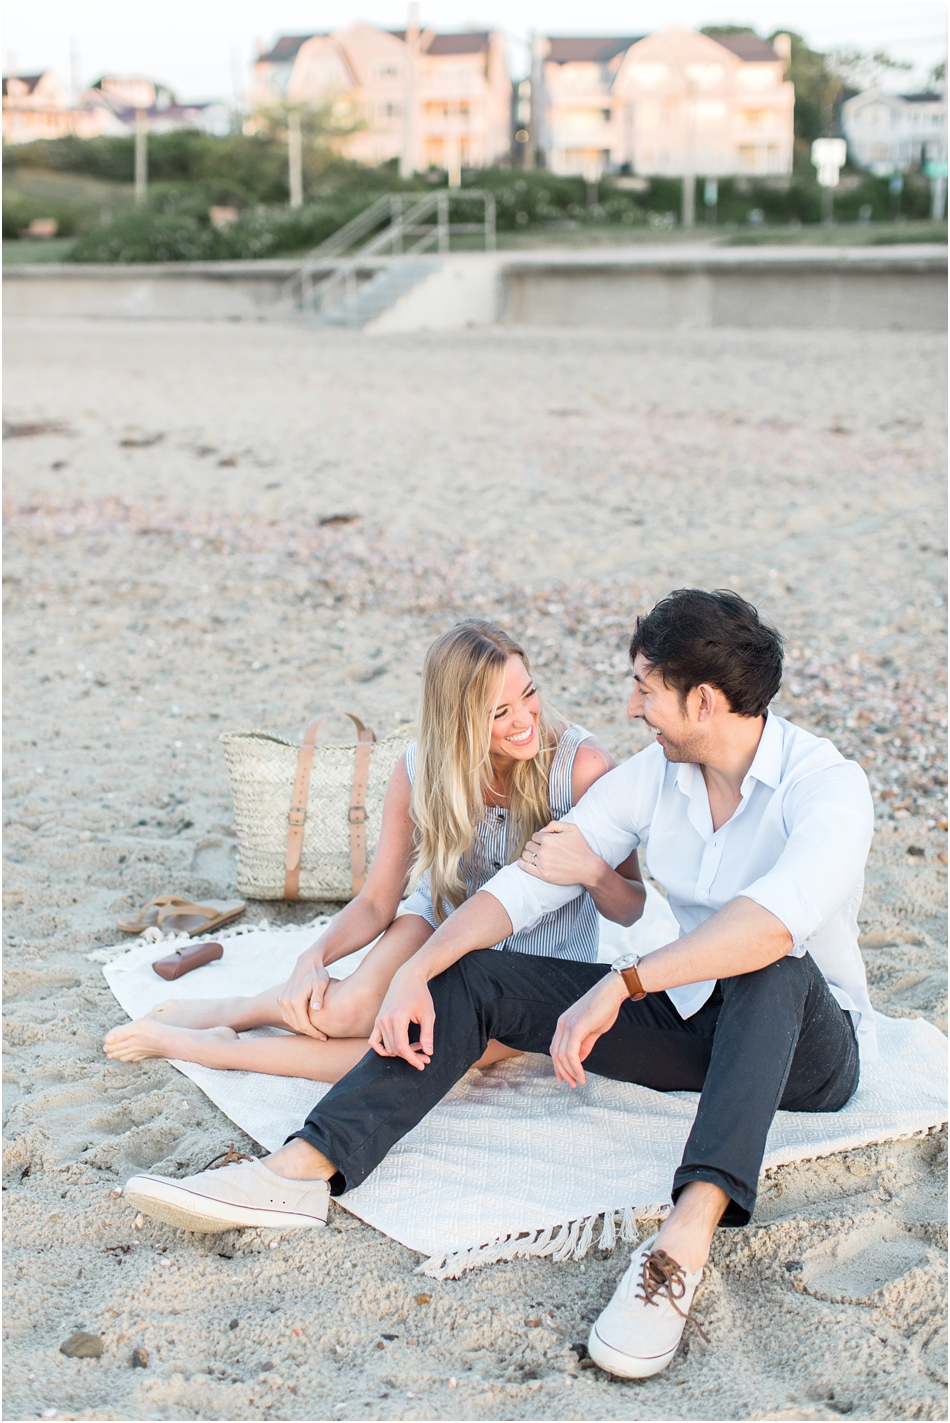 falmouth_beach_engagement_green_pond_boston_massachusetts_cape_cod_new_england_wedding_photographer_Meredith_Jane_Photography_photo_1635.jpg